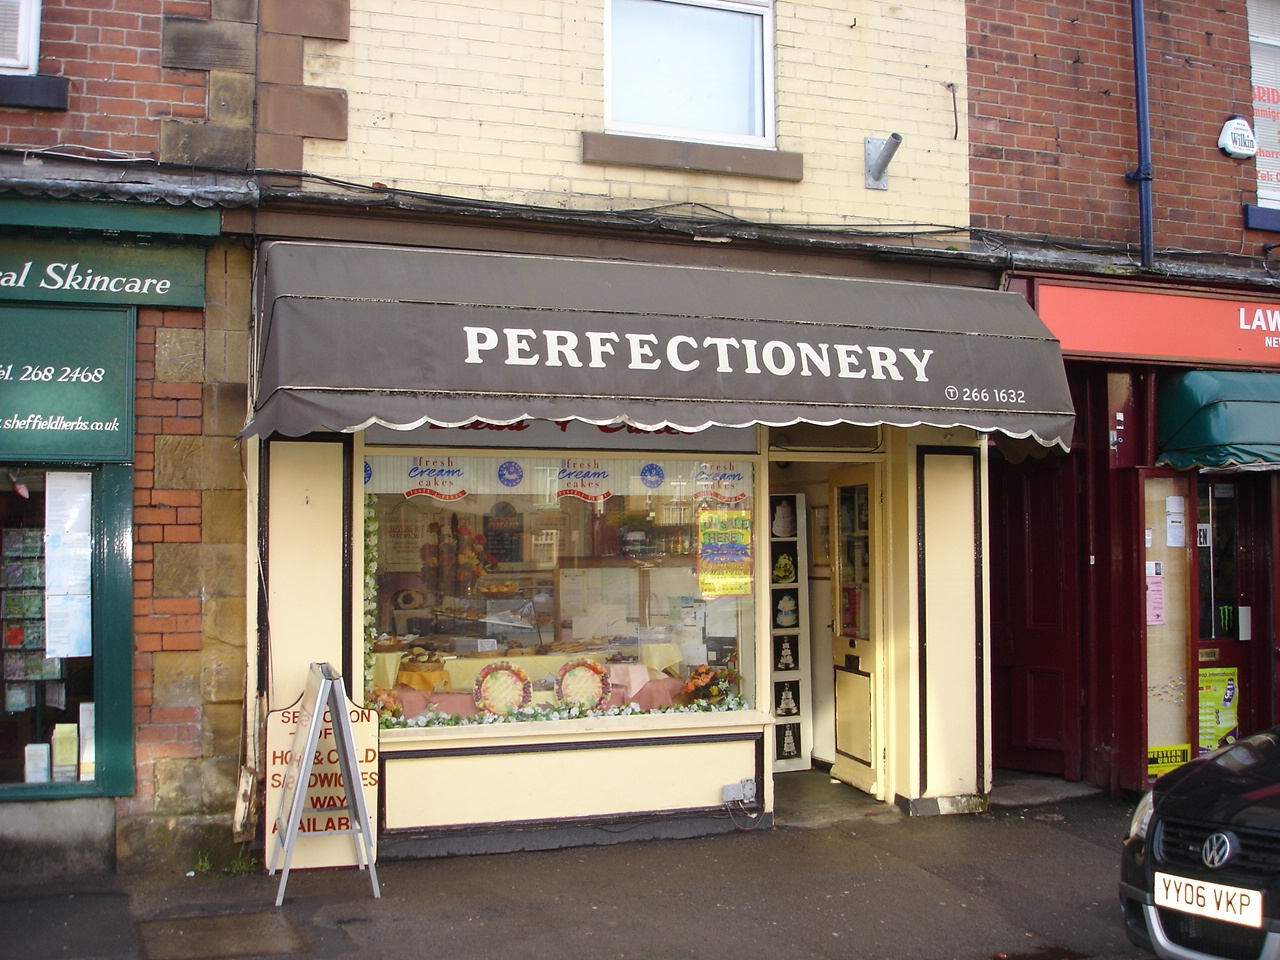 Perfectionery Sandwich Bar & Specialist Cake Bakery – Superb Sheffield Location.